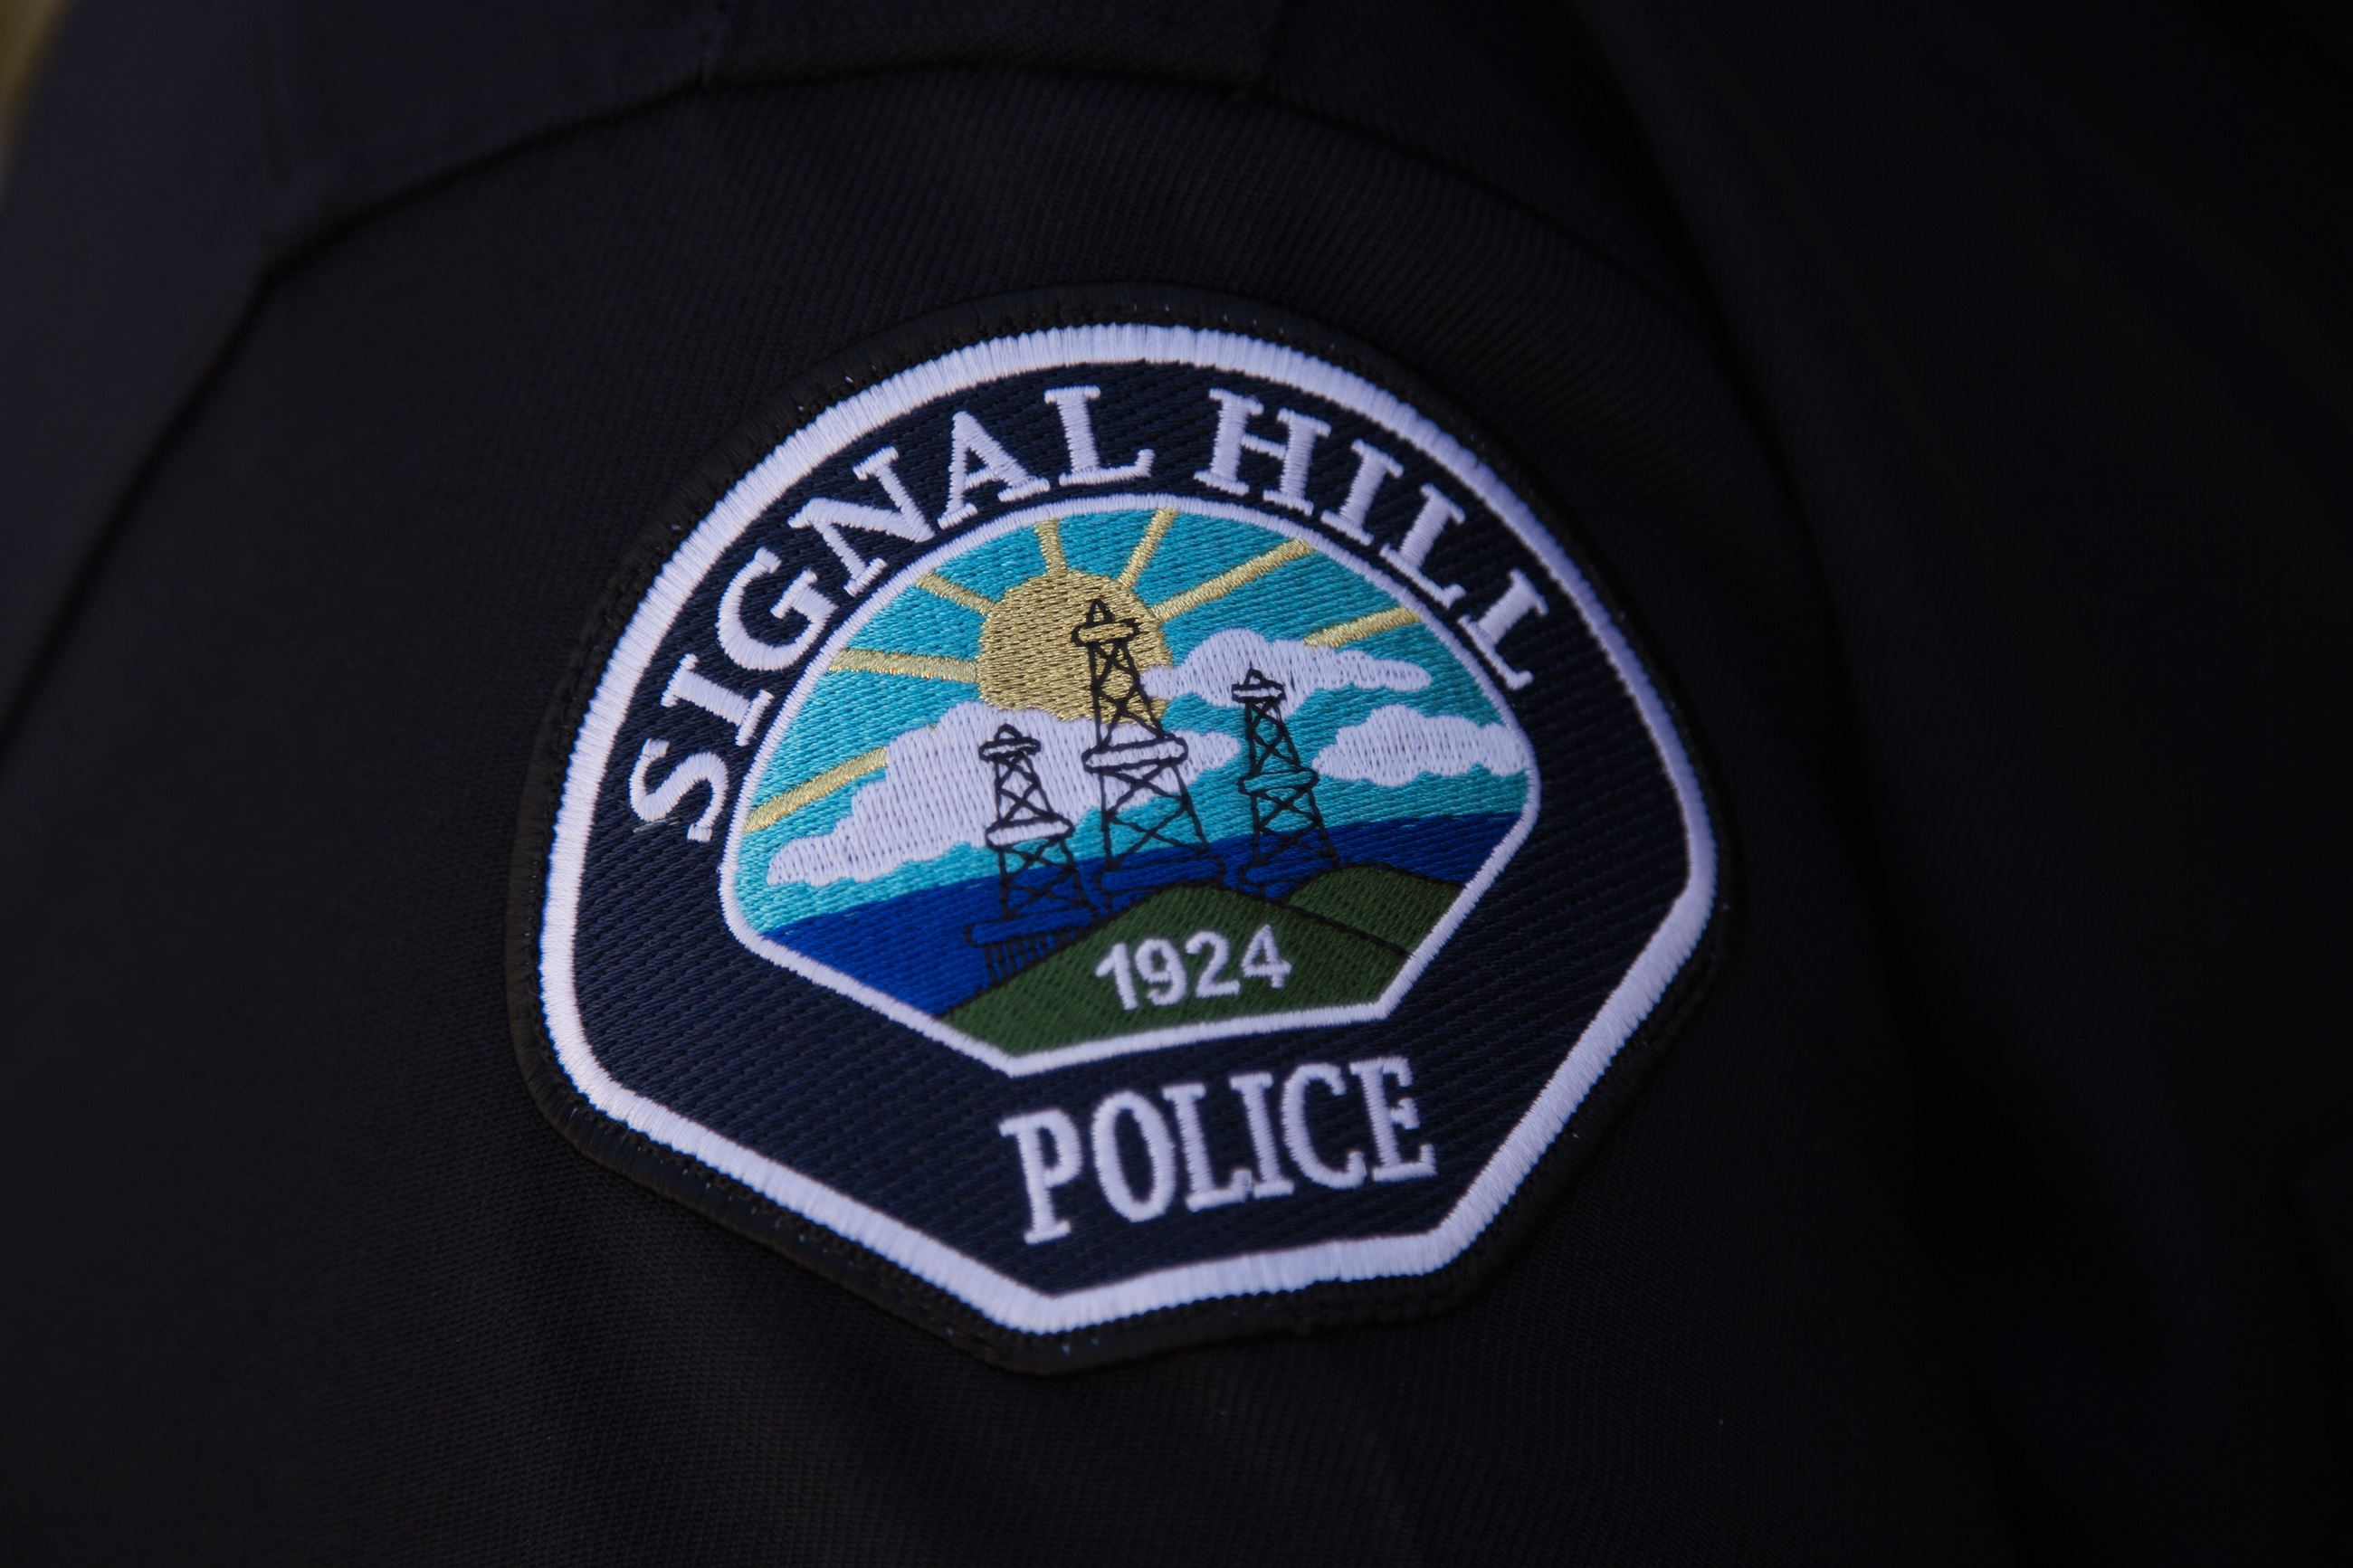 Signal Hill Police Patch on a Uniform